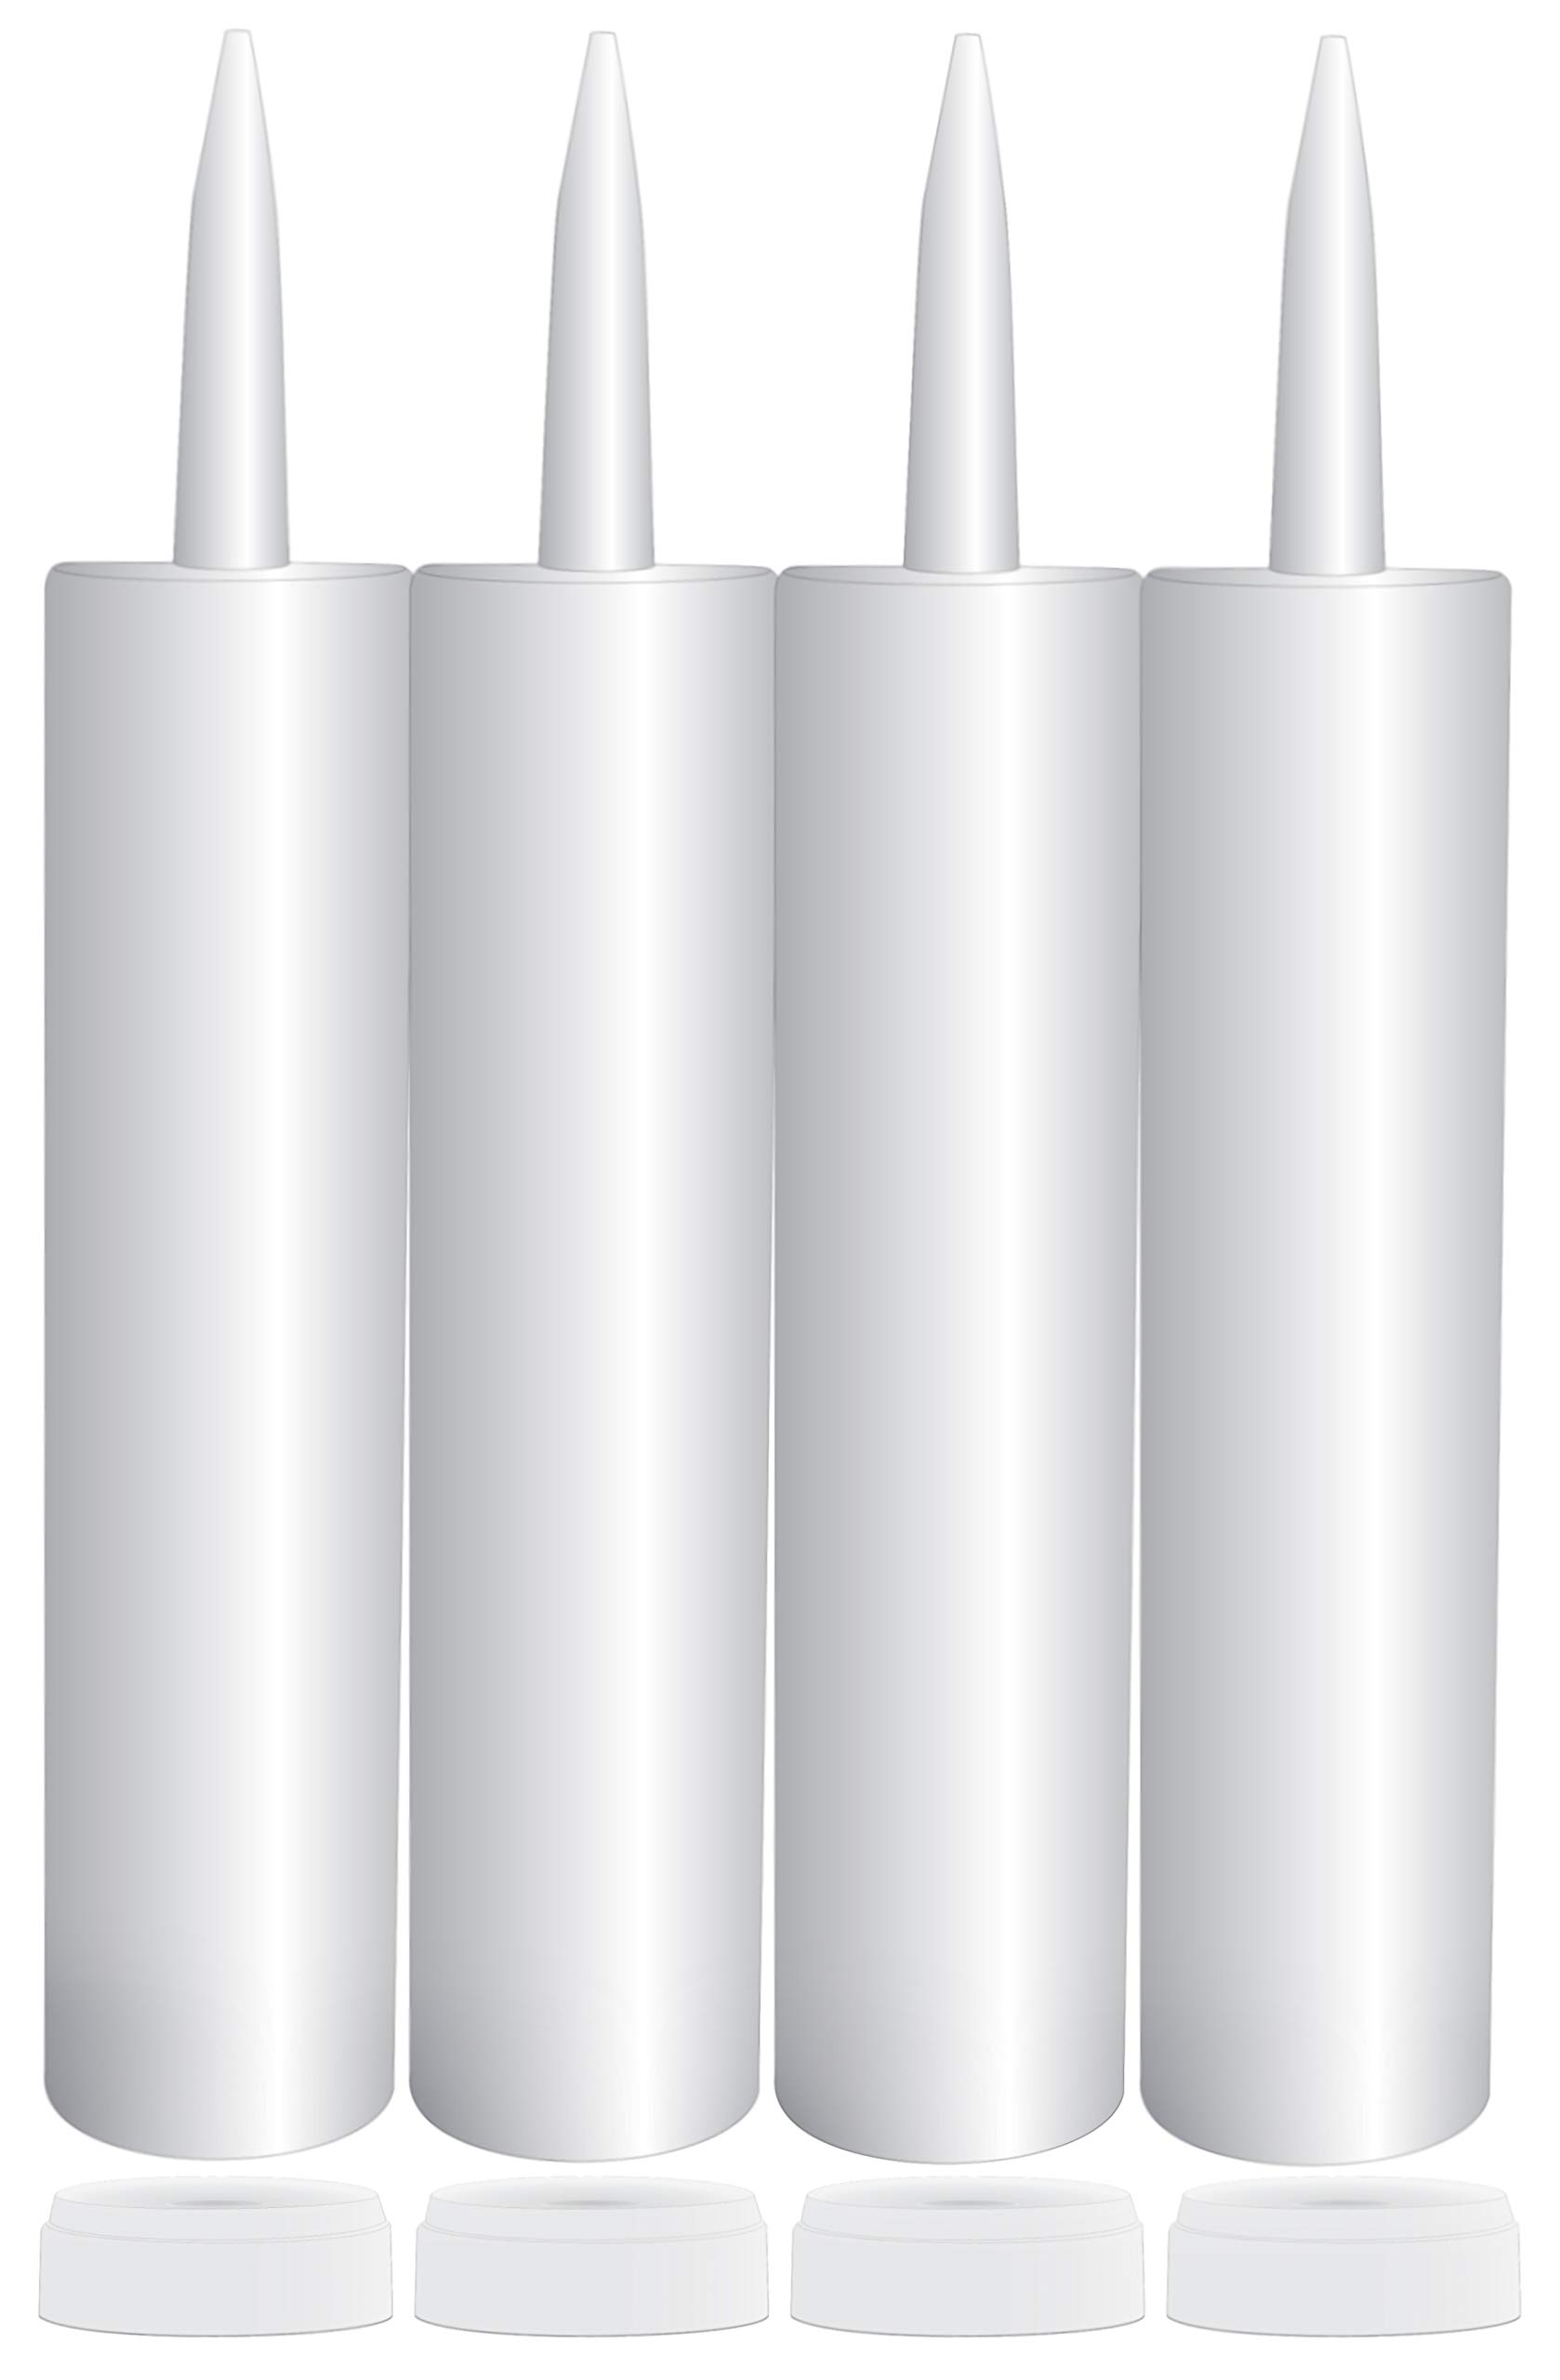 Empty Plastic Caulking Tubes, 11-Ounce (4-Pack); Refillable Sealant Tubes